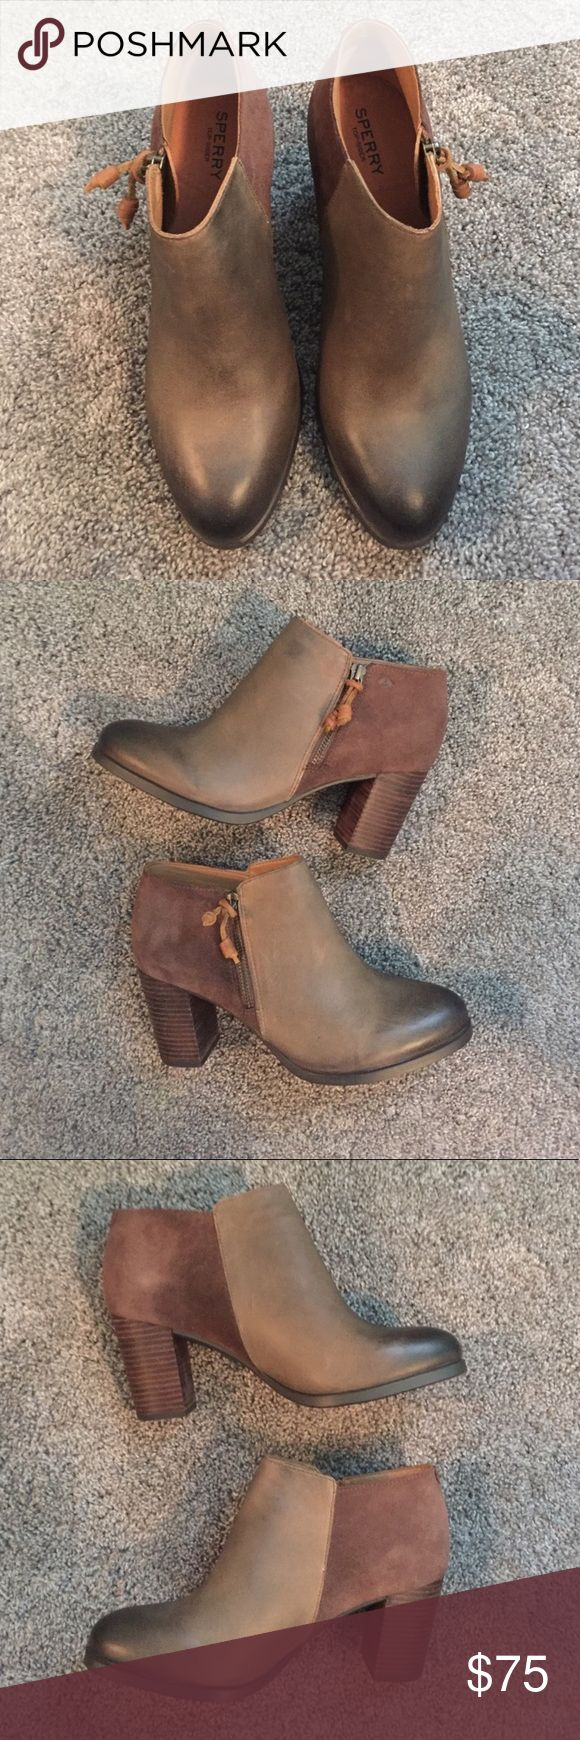 "1 Day Sale: Sperry Booties NWOT Sperry Dasher Lillie ankle booties in ""khaki."" The front is a leather material in brown, and the back of the boogie is faux brown suede. They have zippers on the outside. The heel is three inches! Make me an offer 💕 Sperry Top-Sider Shoes Ankle Boots & Booties"